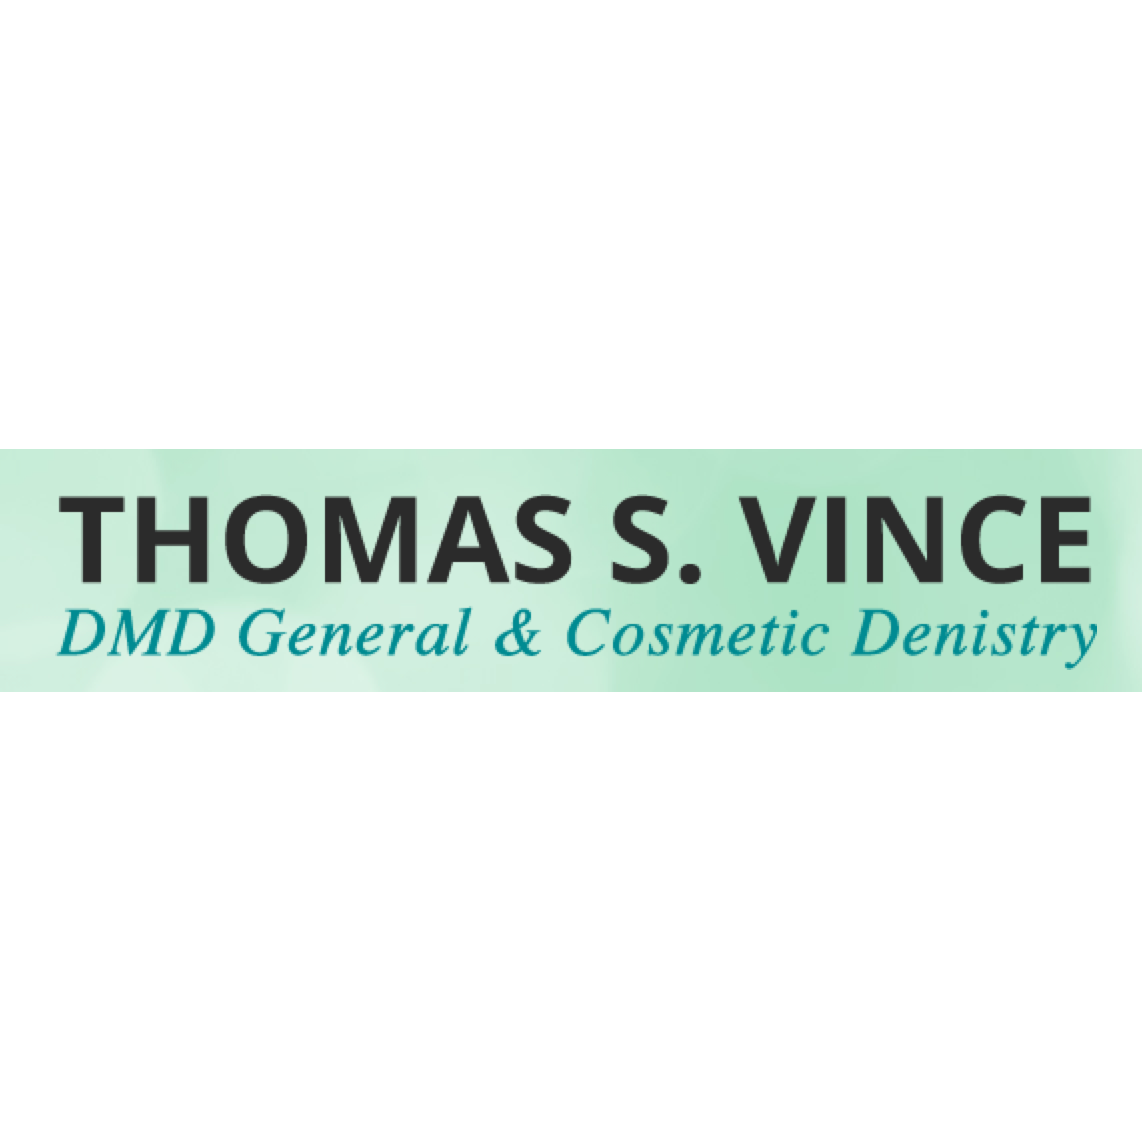 Vince Thomas S DMD - Greensburg, PA - Dentists & Dental Services